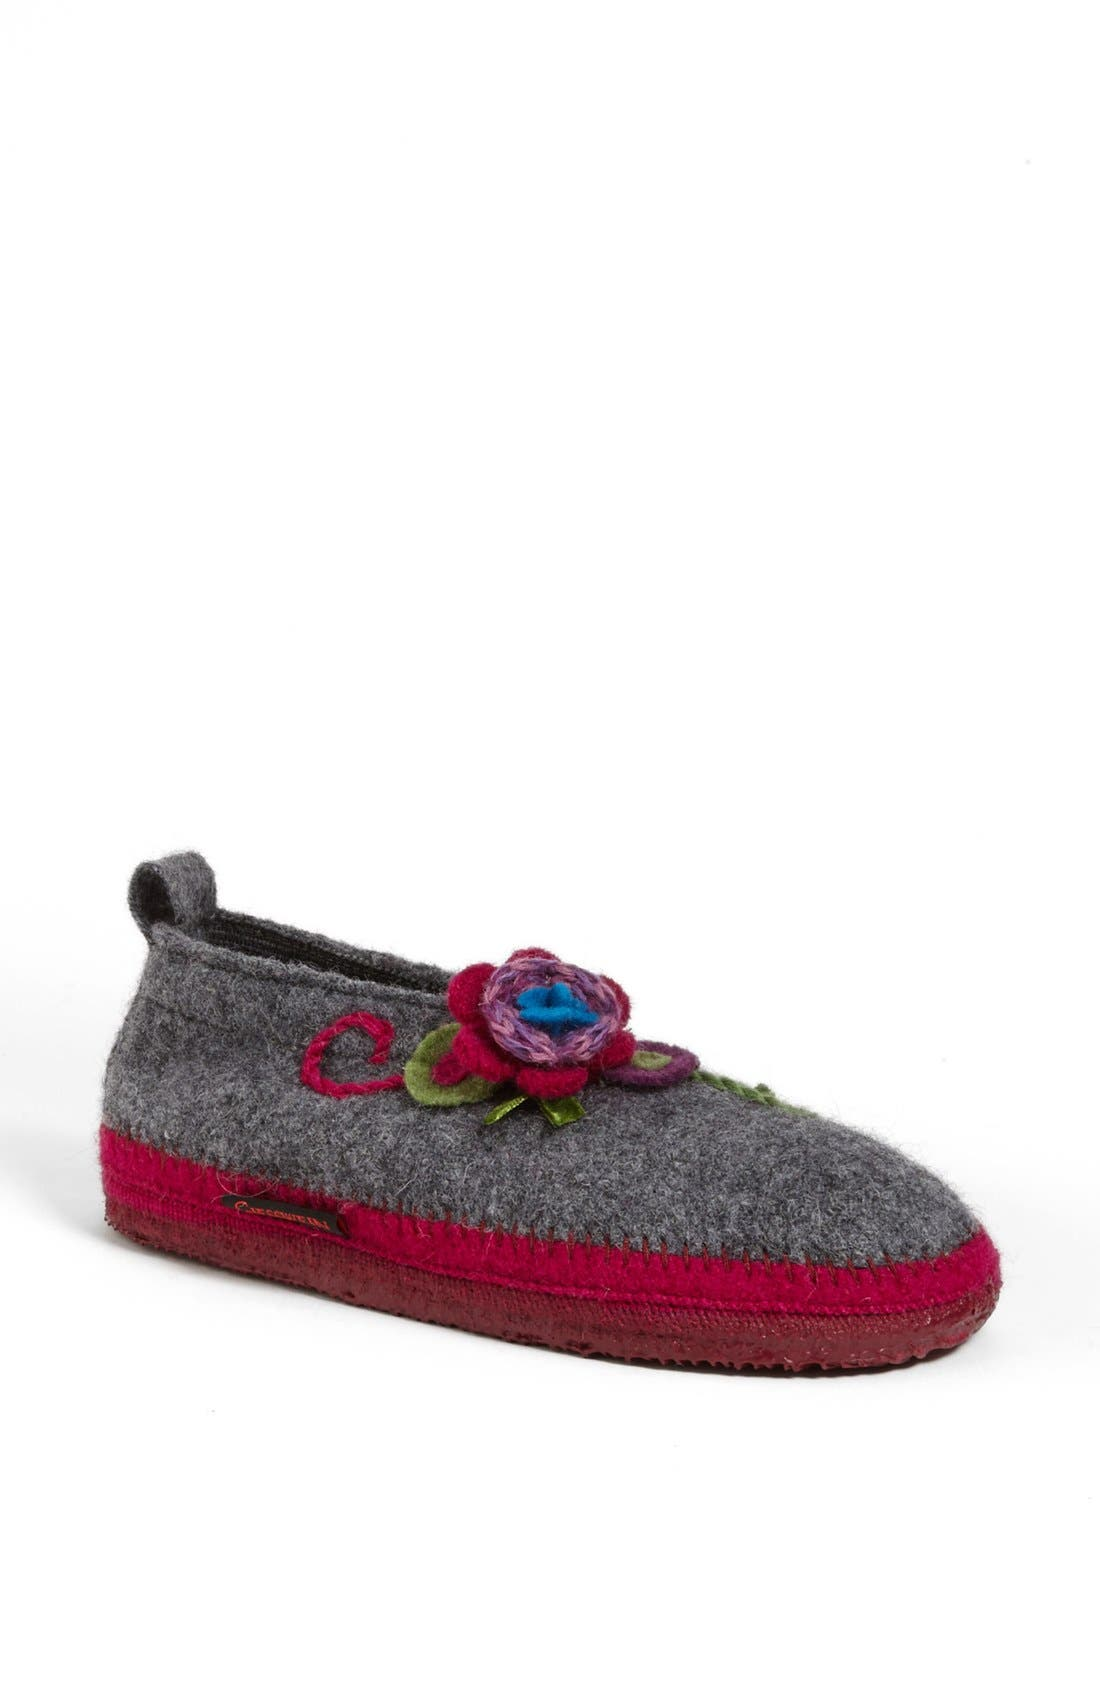 'Lunz' Slipper,                             Main thumbnail 1, color,                             LIGHT GREY